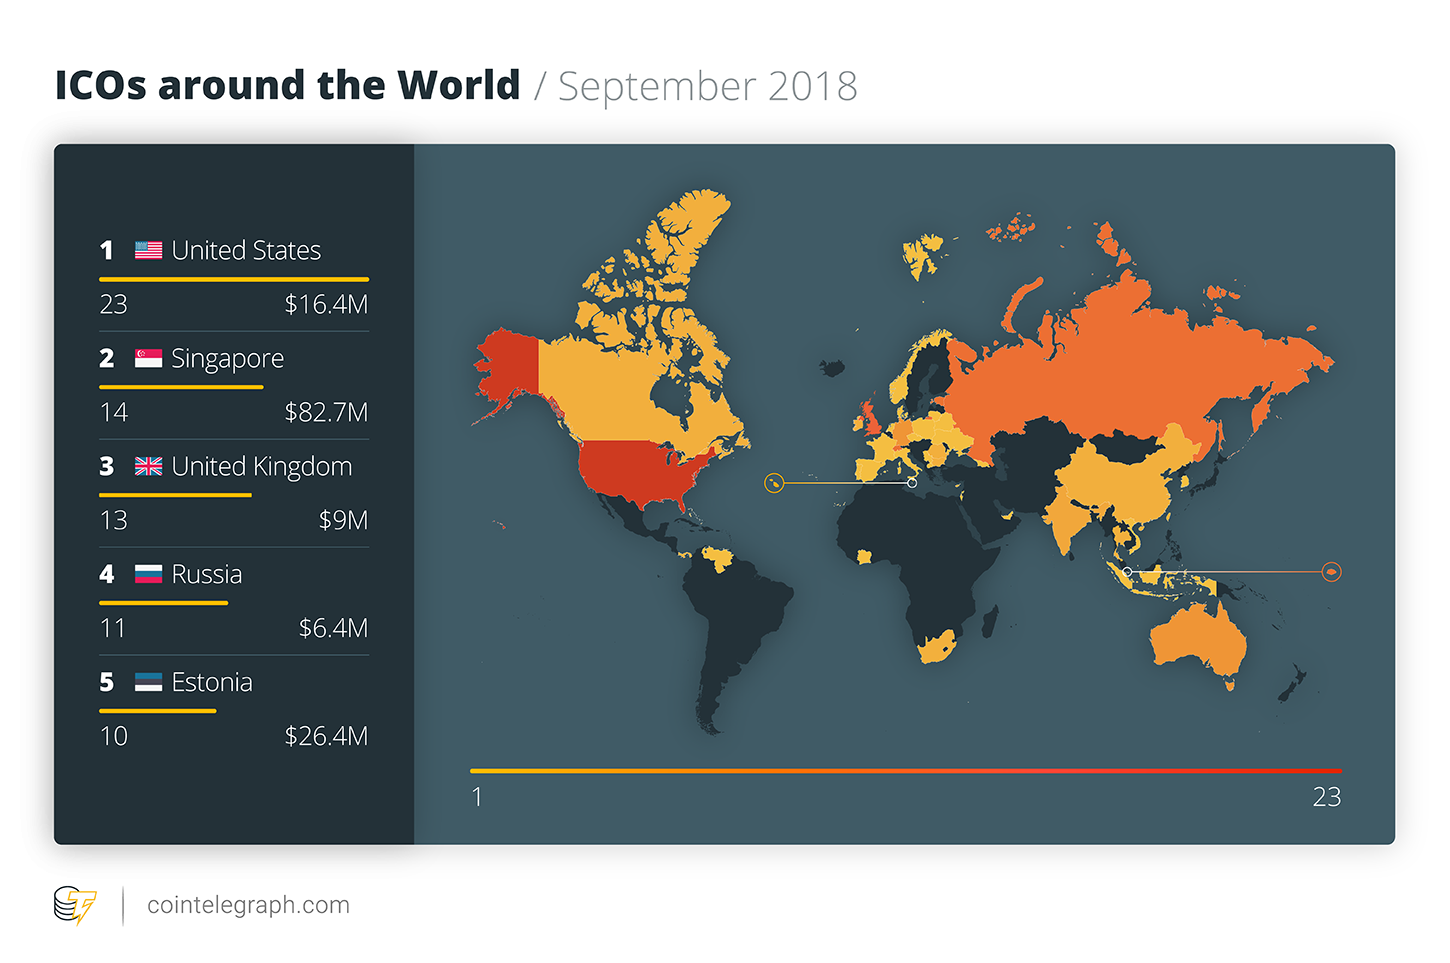 ICOs around the World